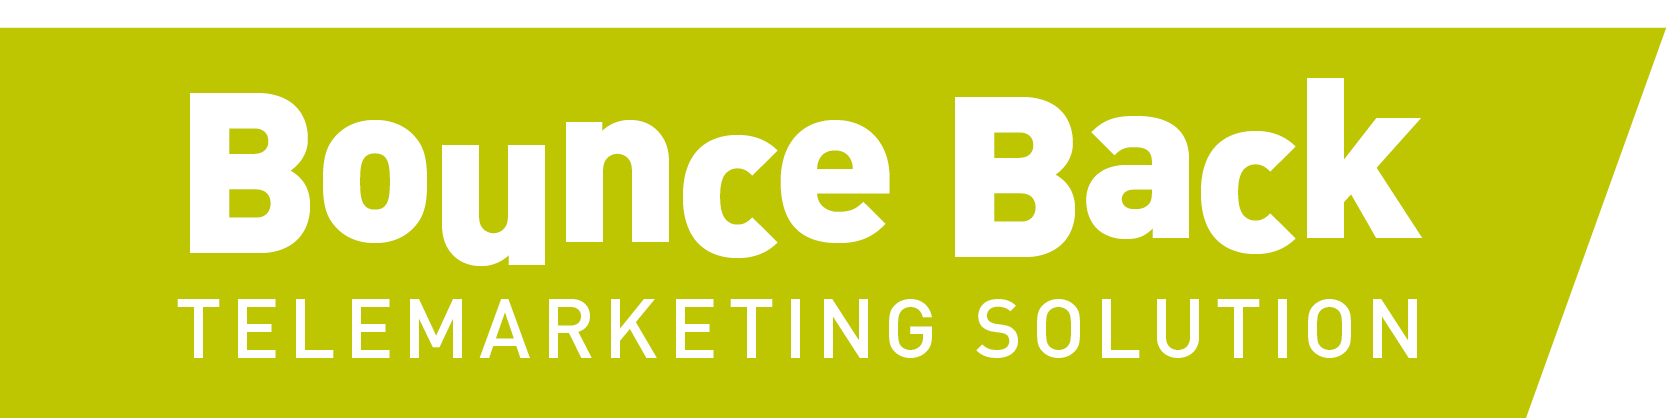 Bounce Back Telemarketing Solution new from Your Telemarketing